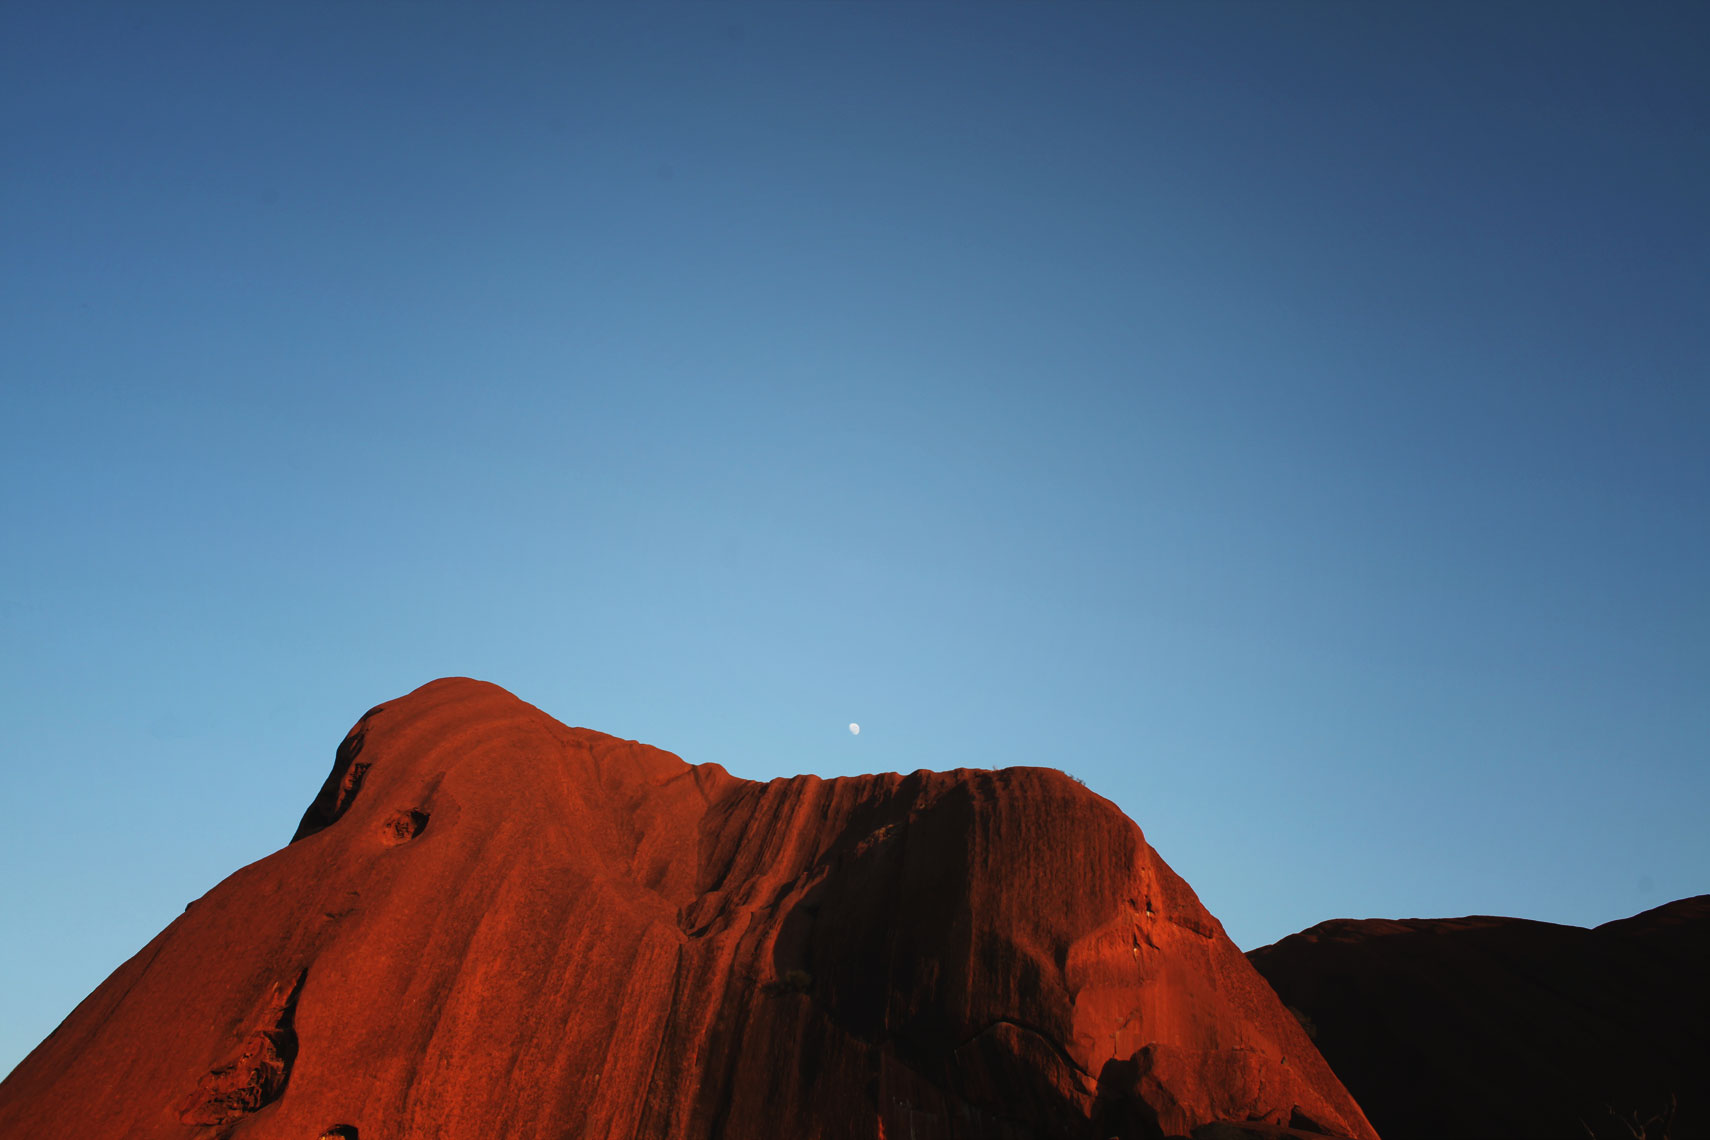 peggy-wong-photography_stories_wayfare-magazine_uluru-ayers-rock_australia_0437